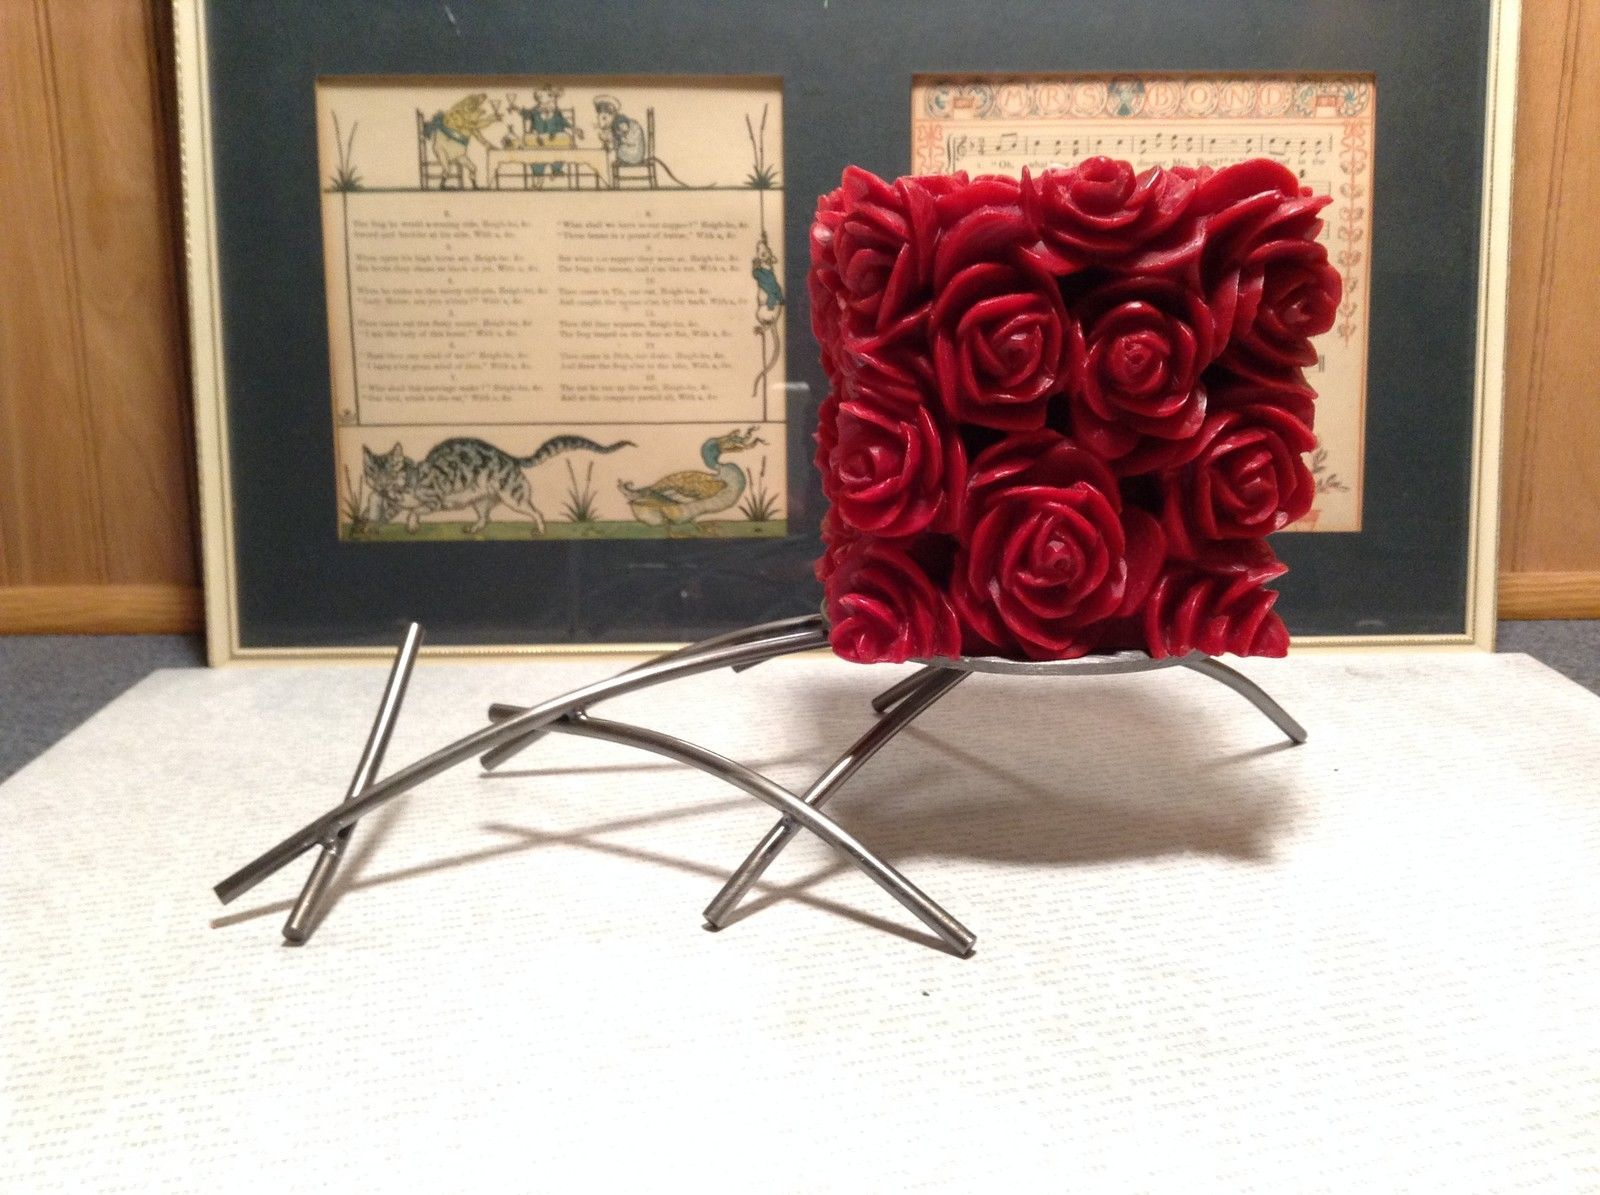 Primary image for Handmade Steel Candle Stand Artist Girardini Artistic Made in USA